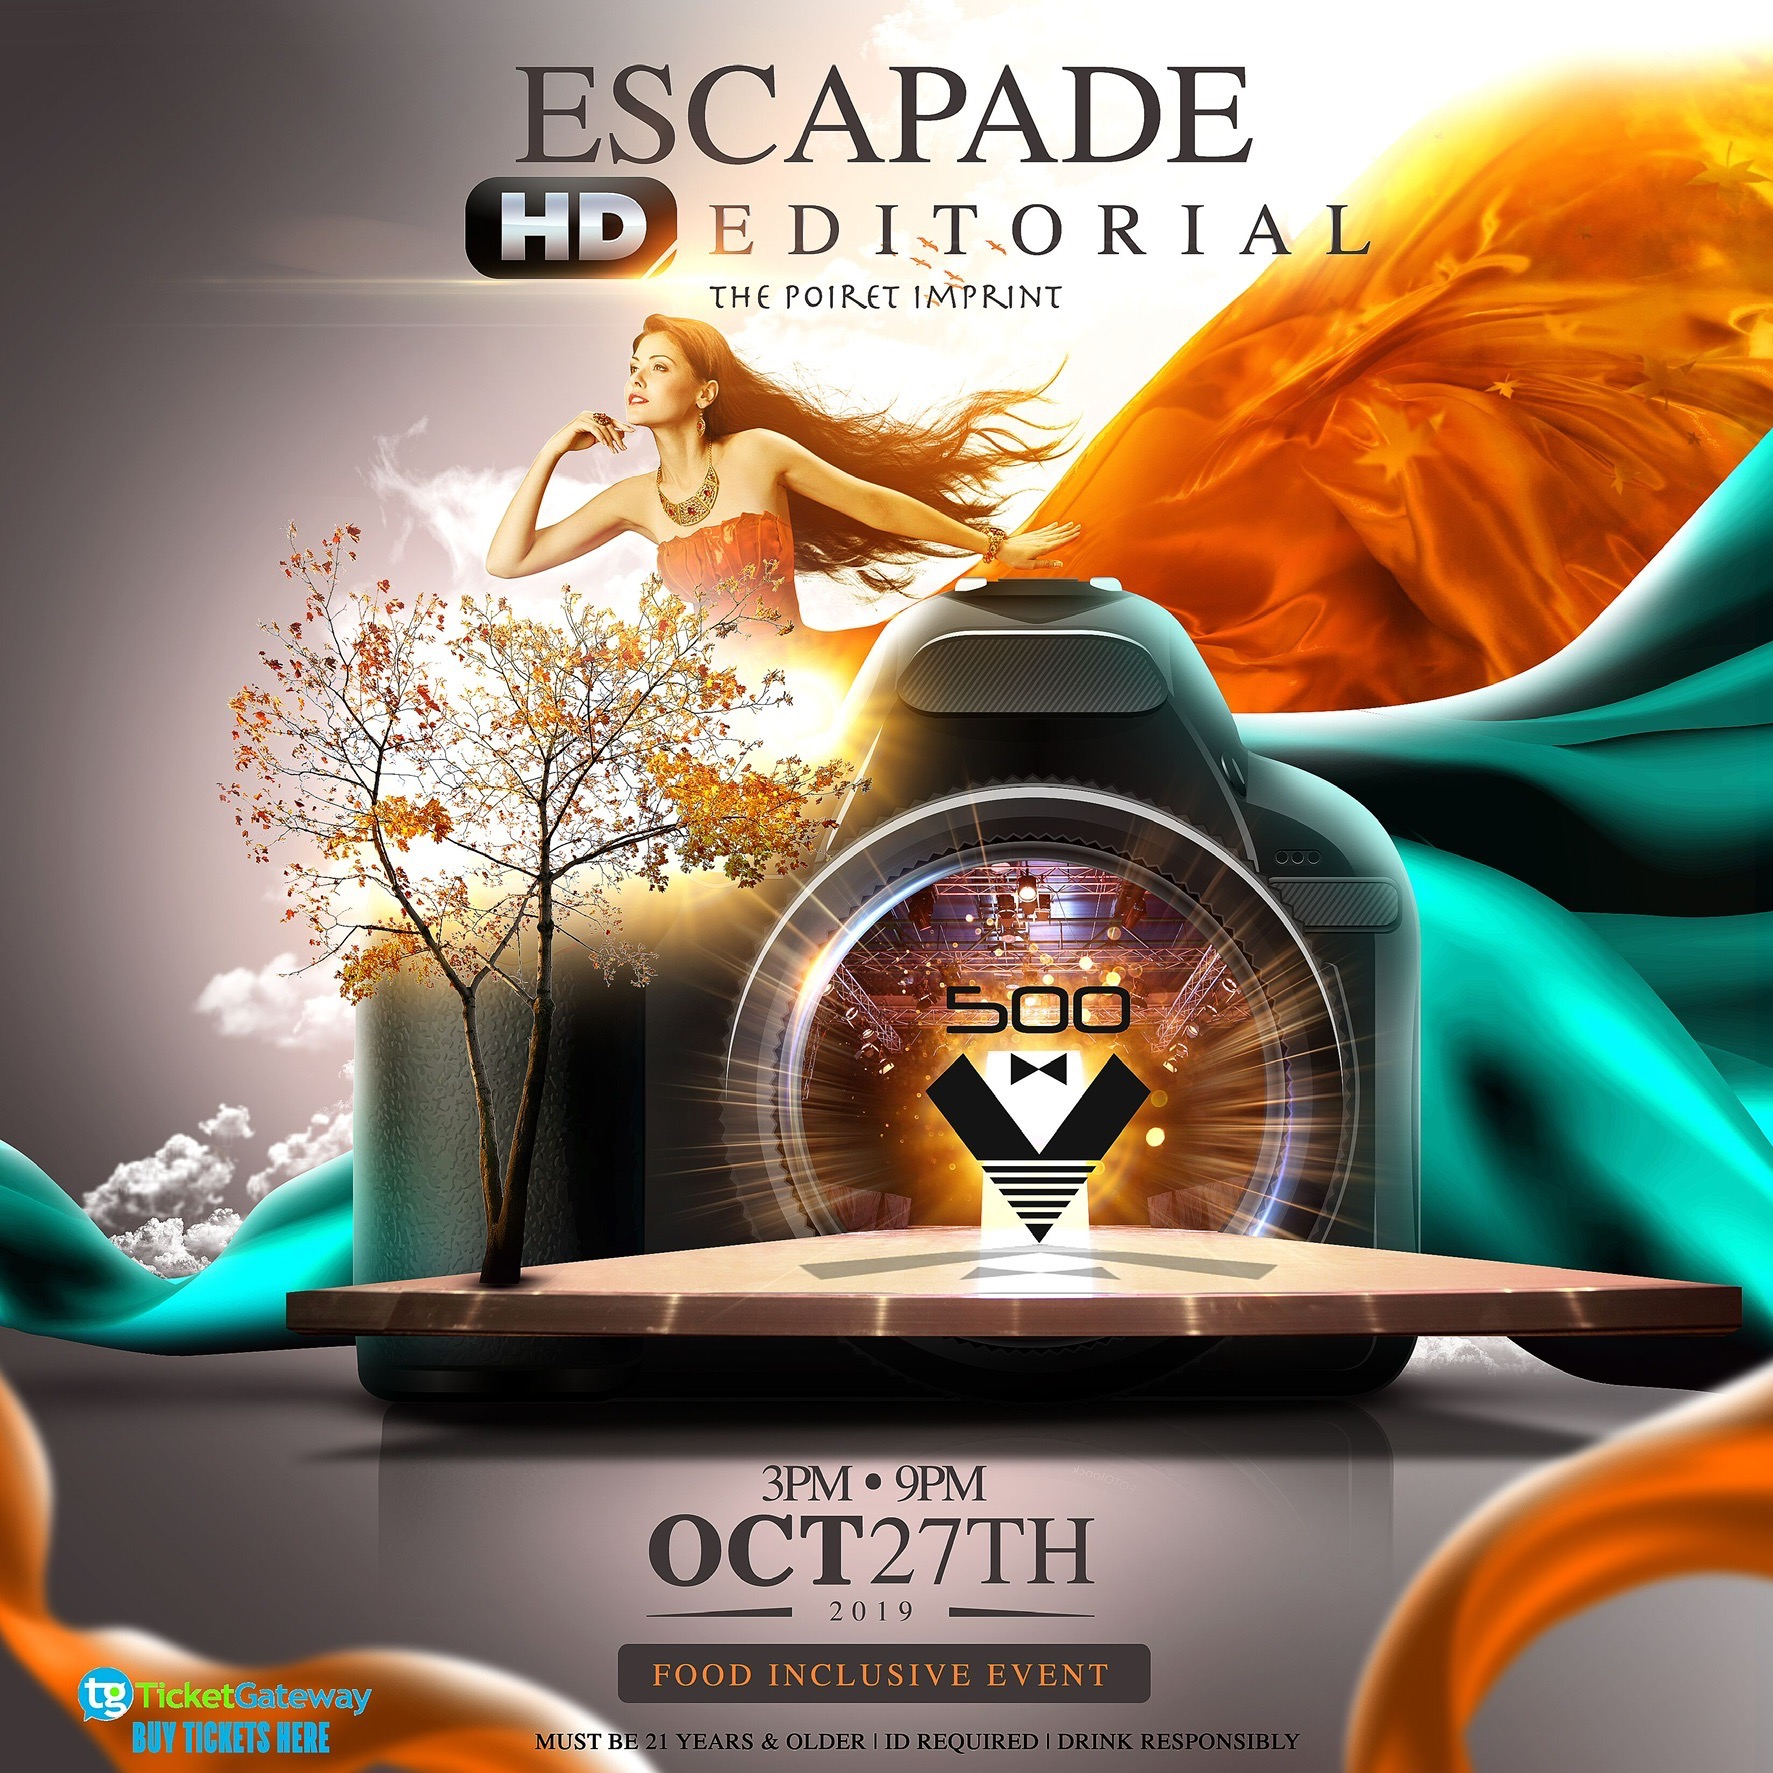 Escapade HD EDITORIAL